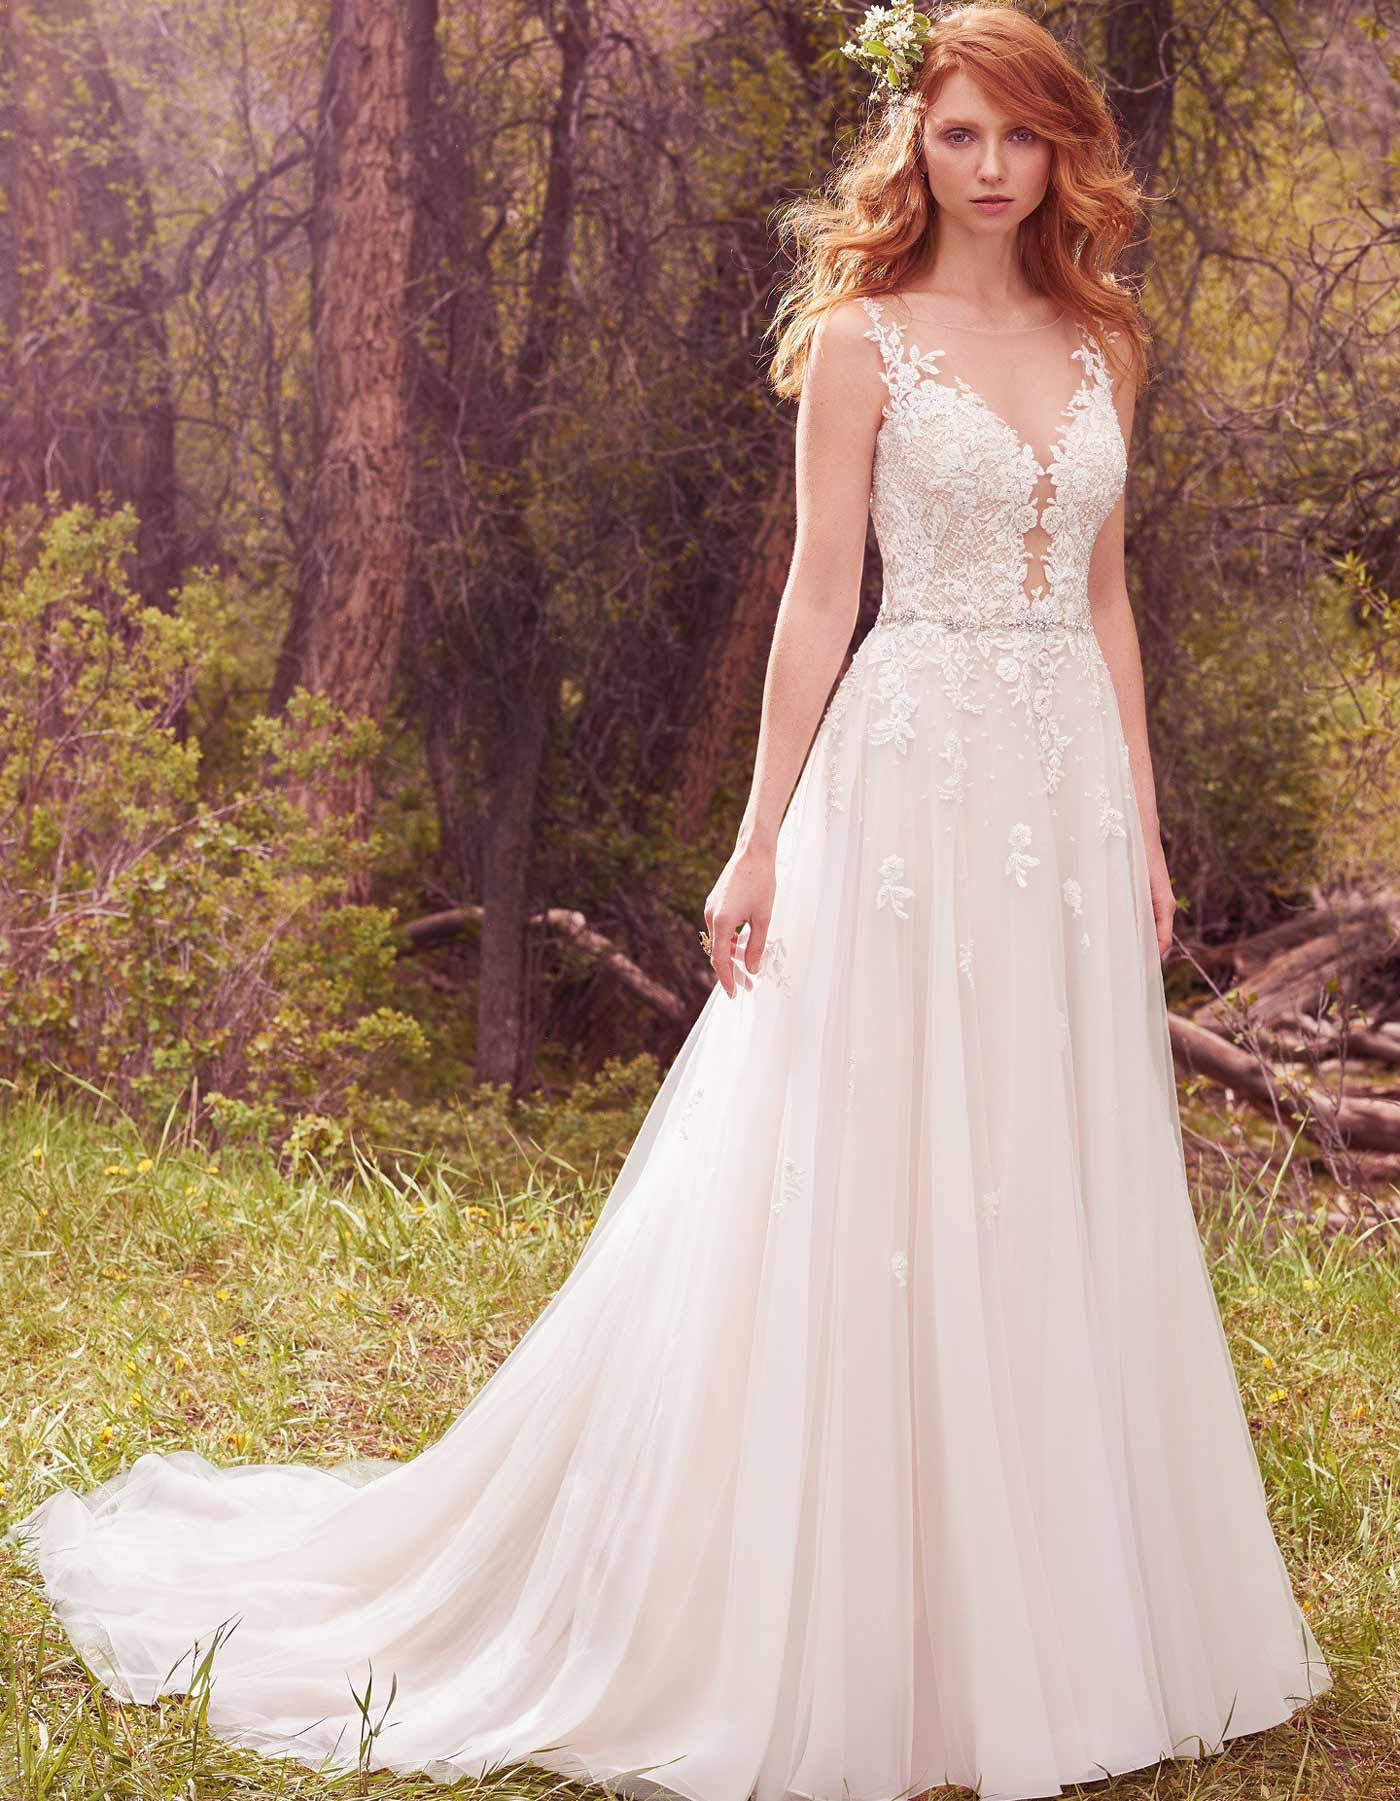 Maggie Sottero Avery wedding dress available at Raffaele Ciuca Bridal, Melbourne Australia